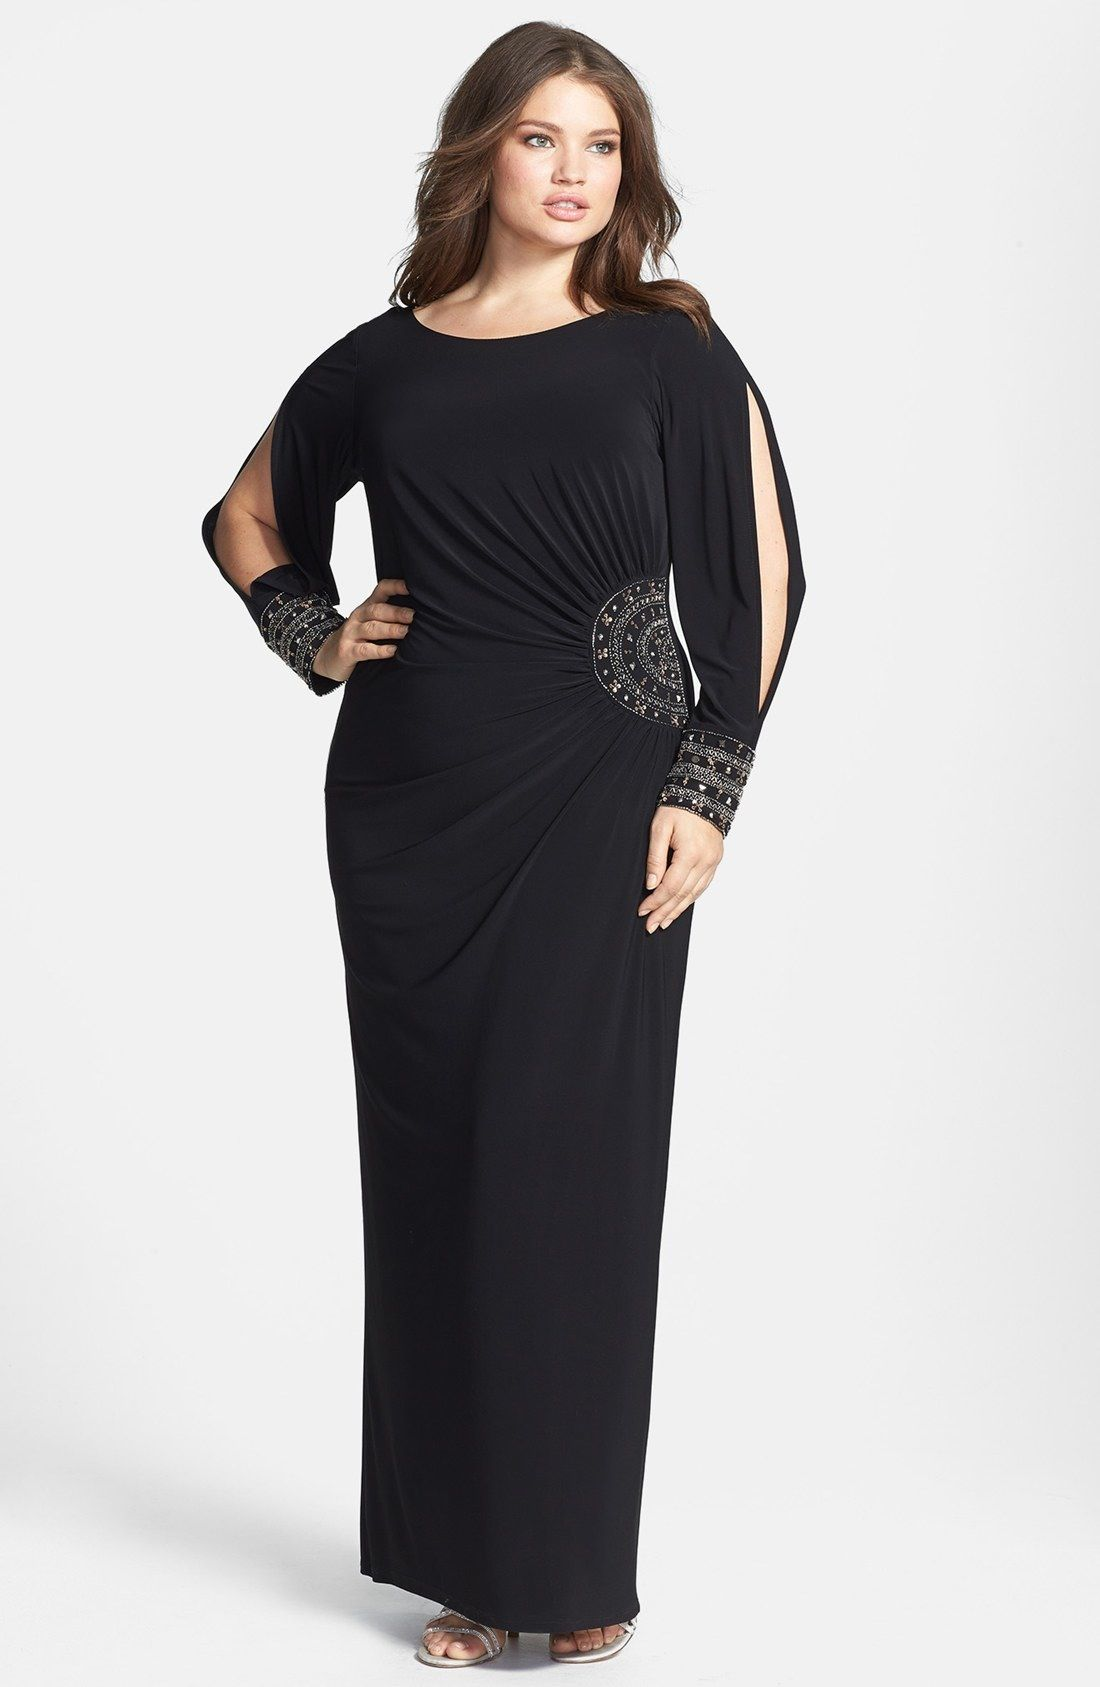 Xscape embellished stretch jersey long dress plus size available